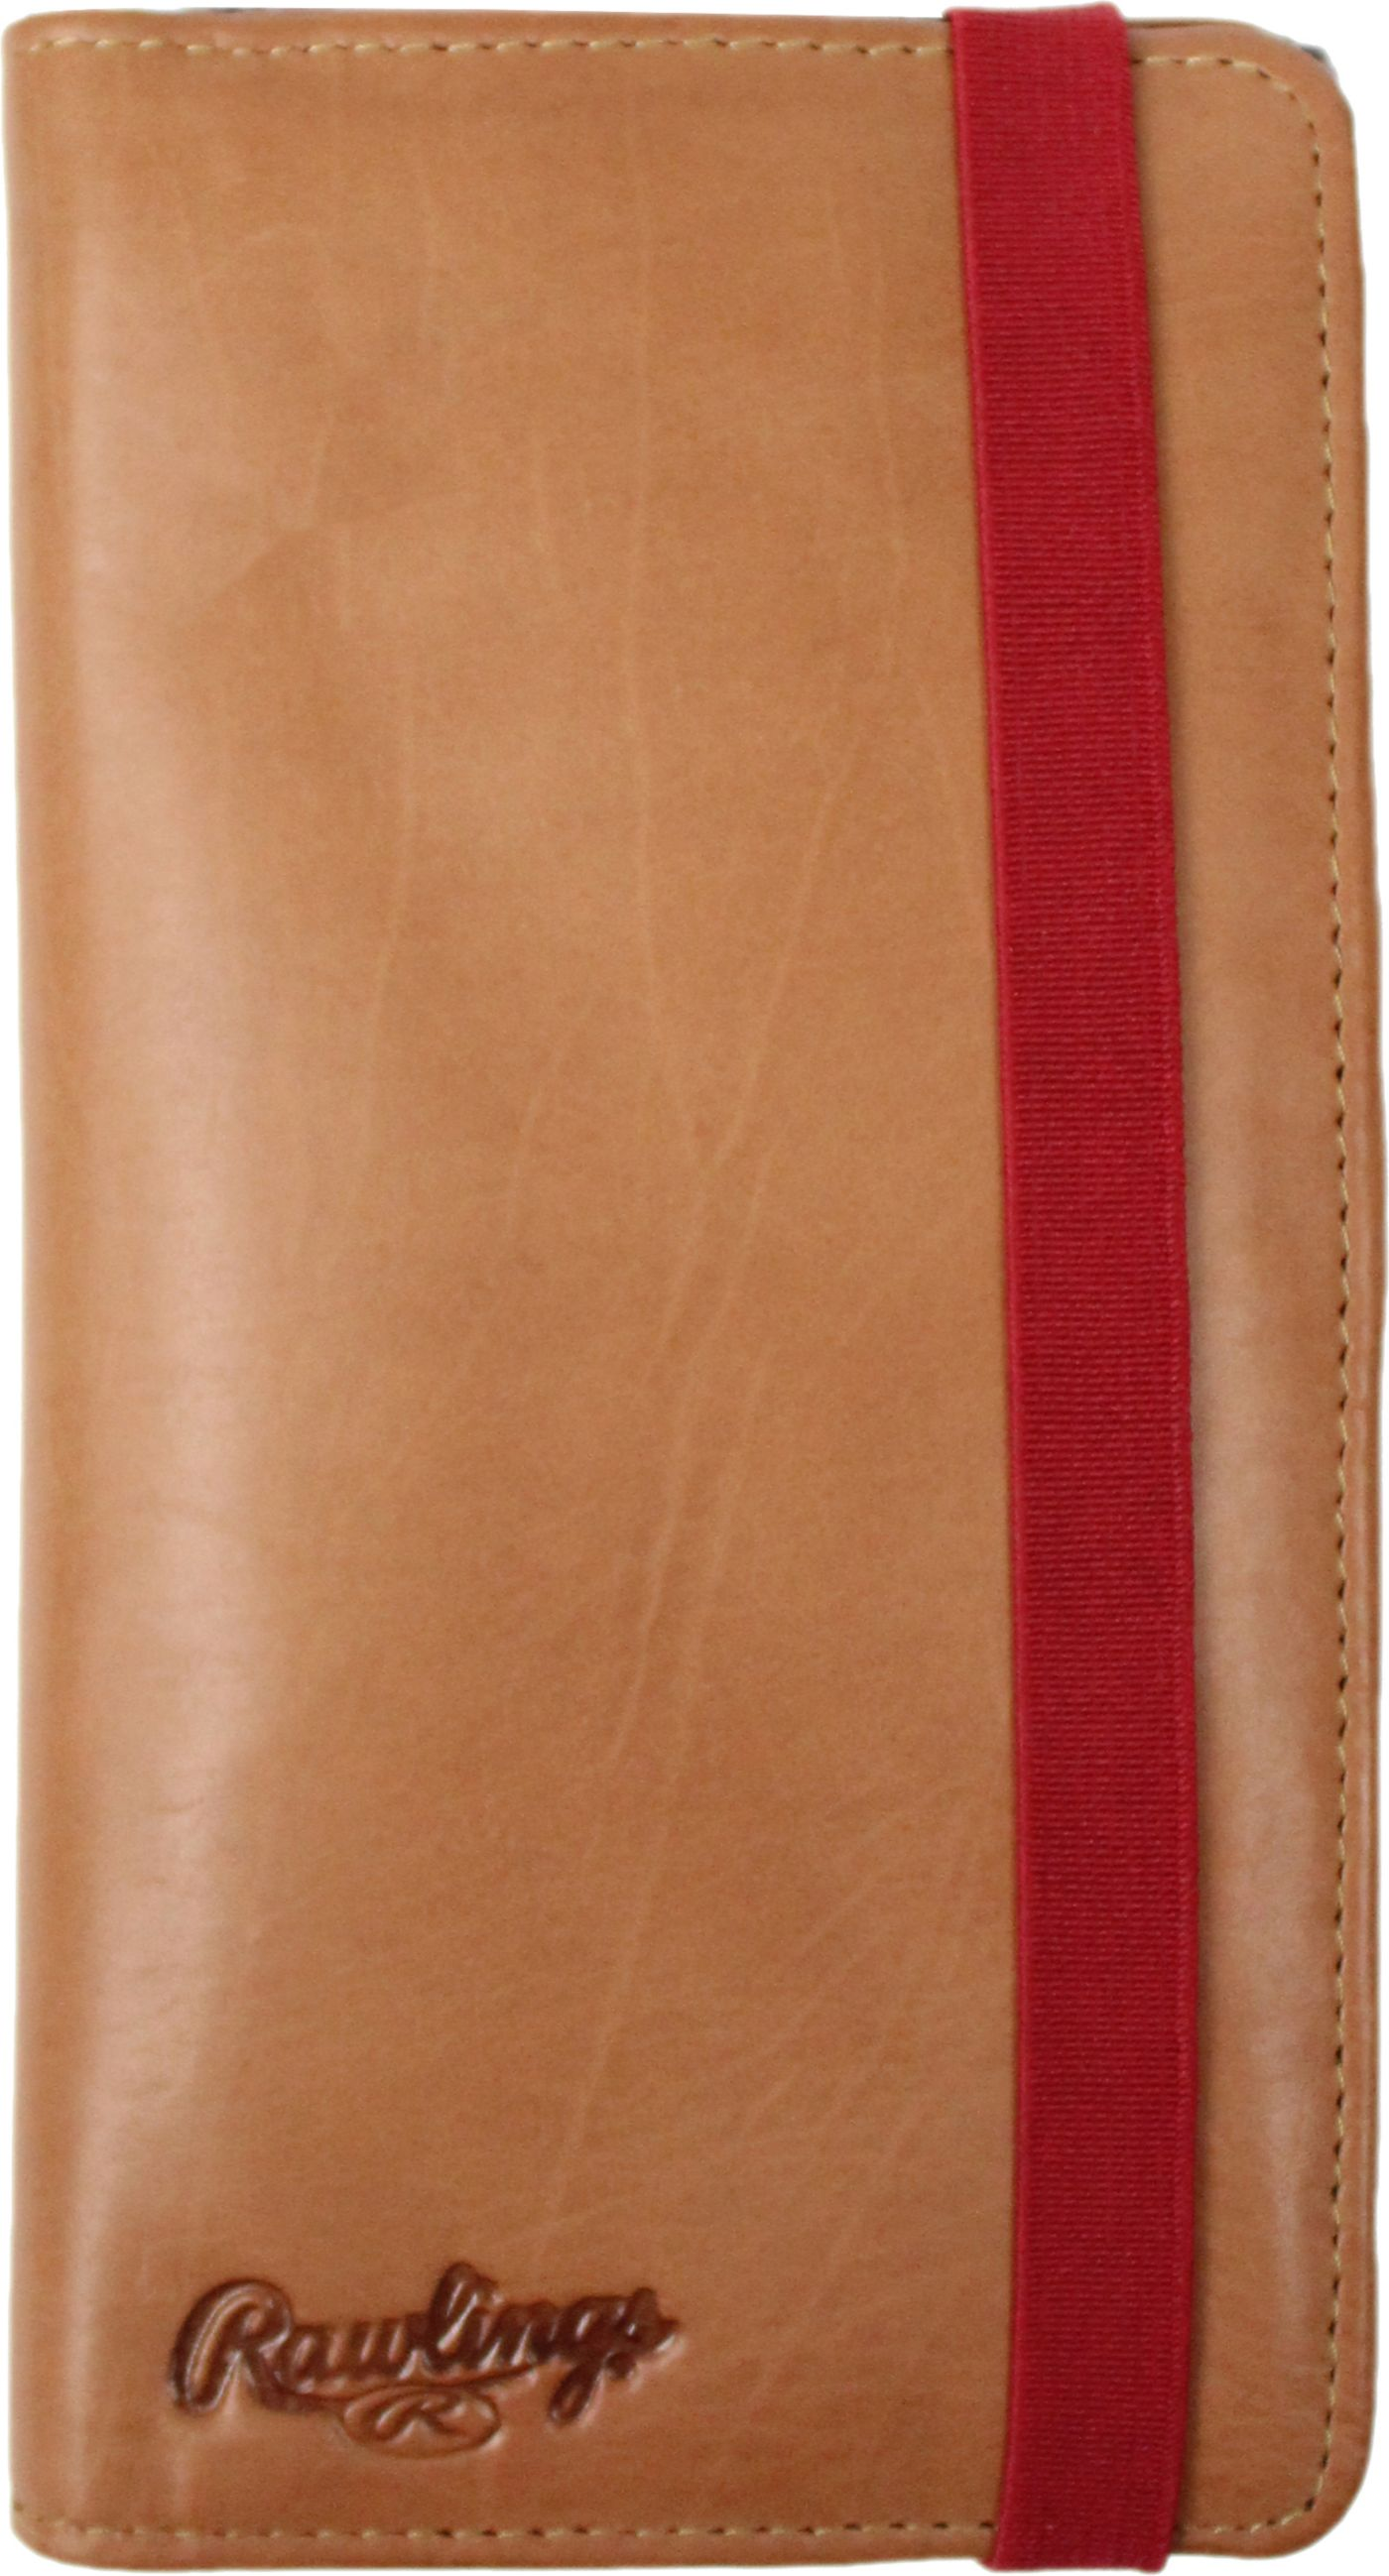 Rawlings Leather Magnetic Wallet & Phone Case